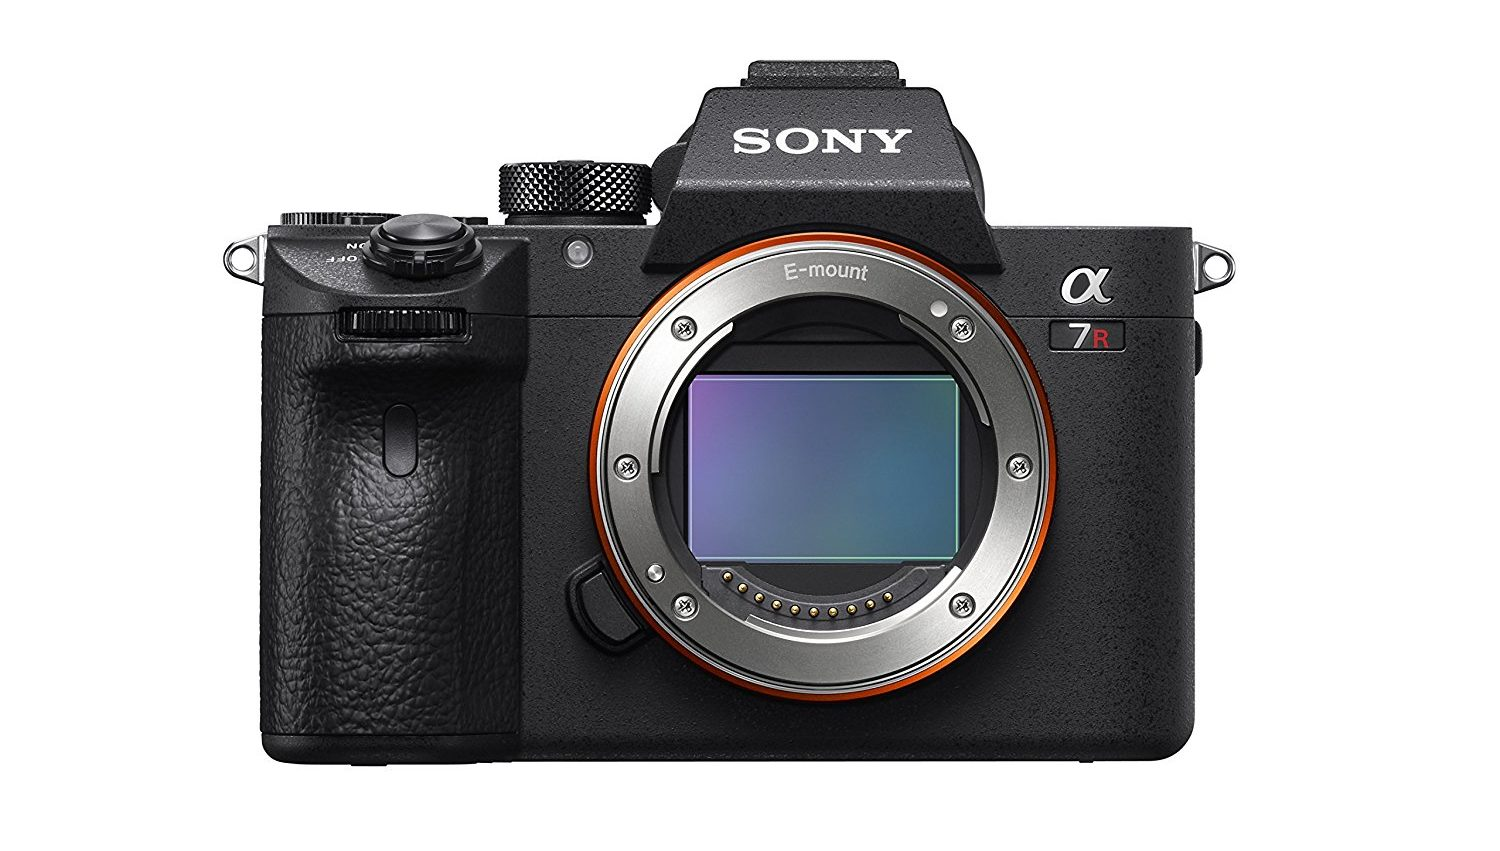 Sony a7R III - Mirrorless Camera for Traveling